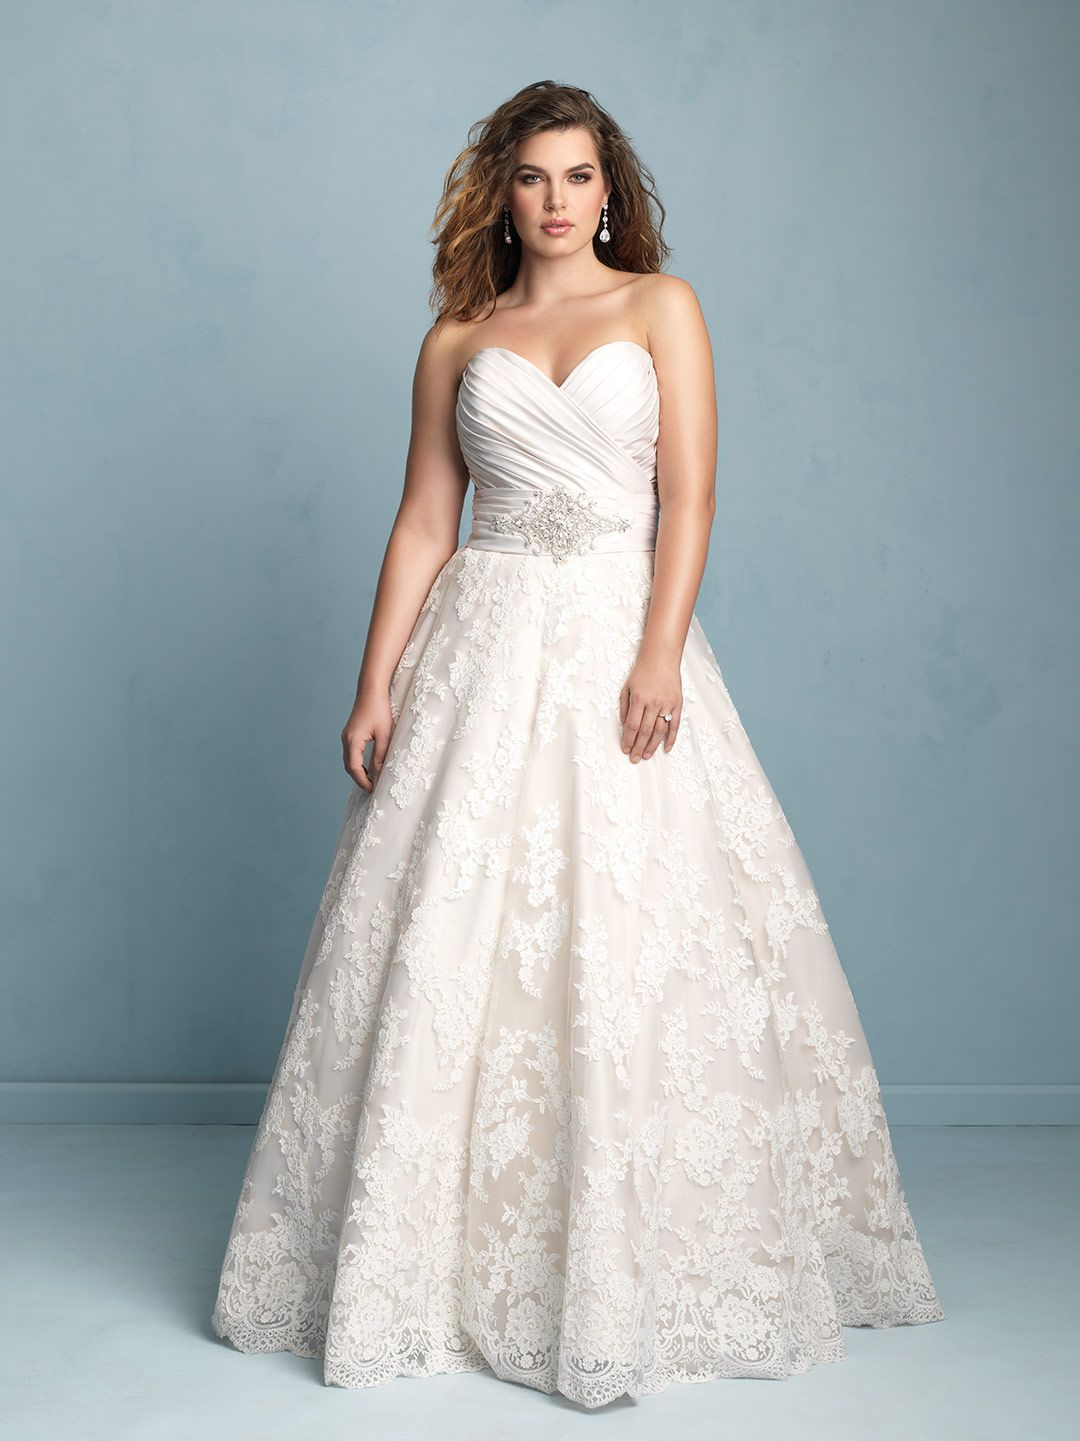 W351 A gorgeous overlap of textures makes this satin, tulle and lace ...